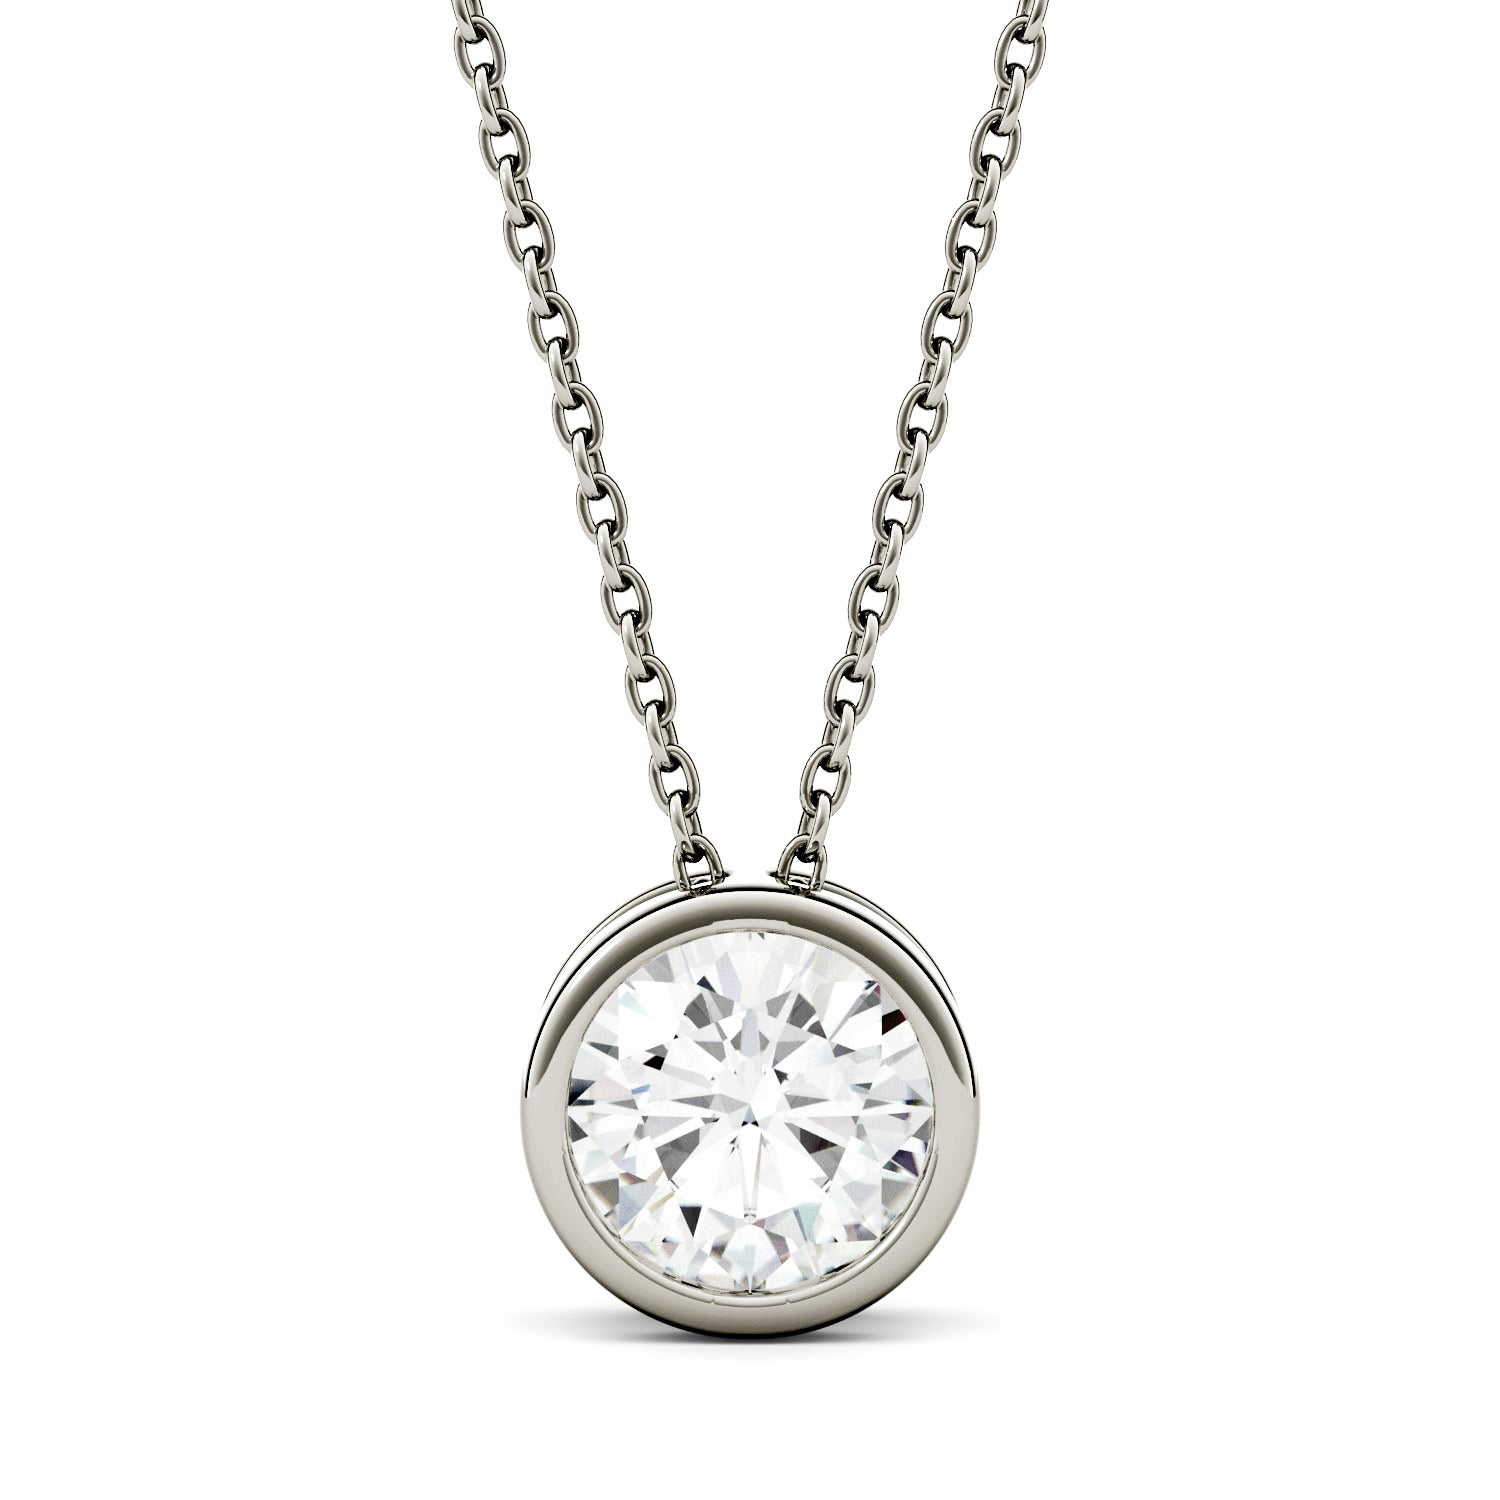 1 Carat TW Charles & Colvard Moissanite Bezel Pendant in White Gold-612718 - Jewelry by Johan